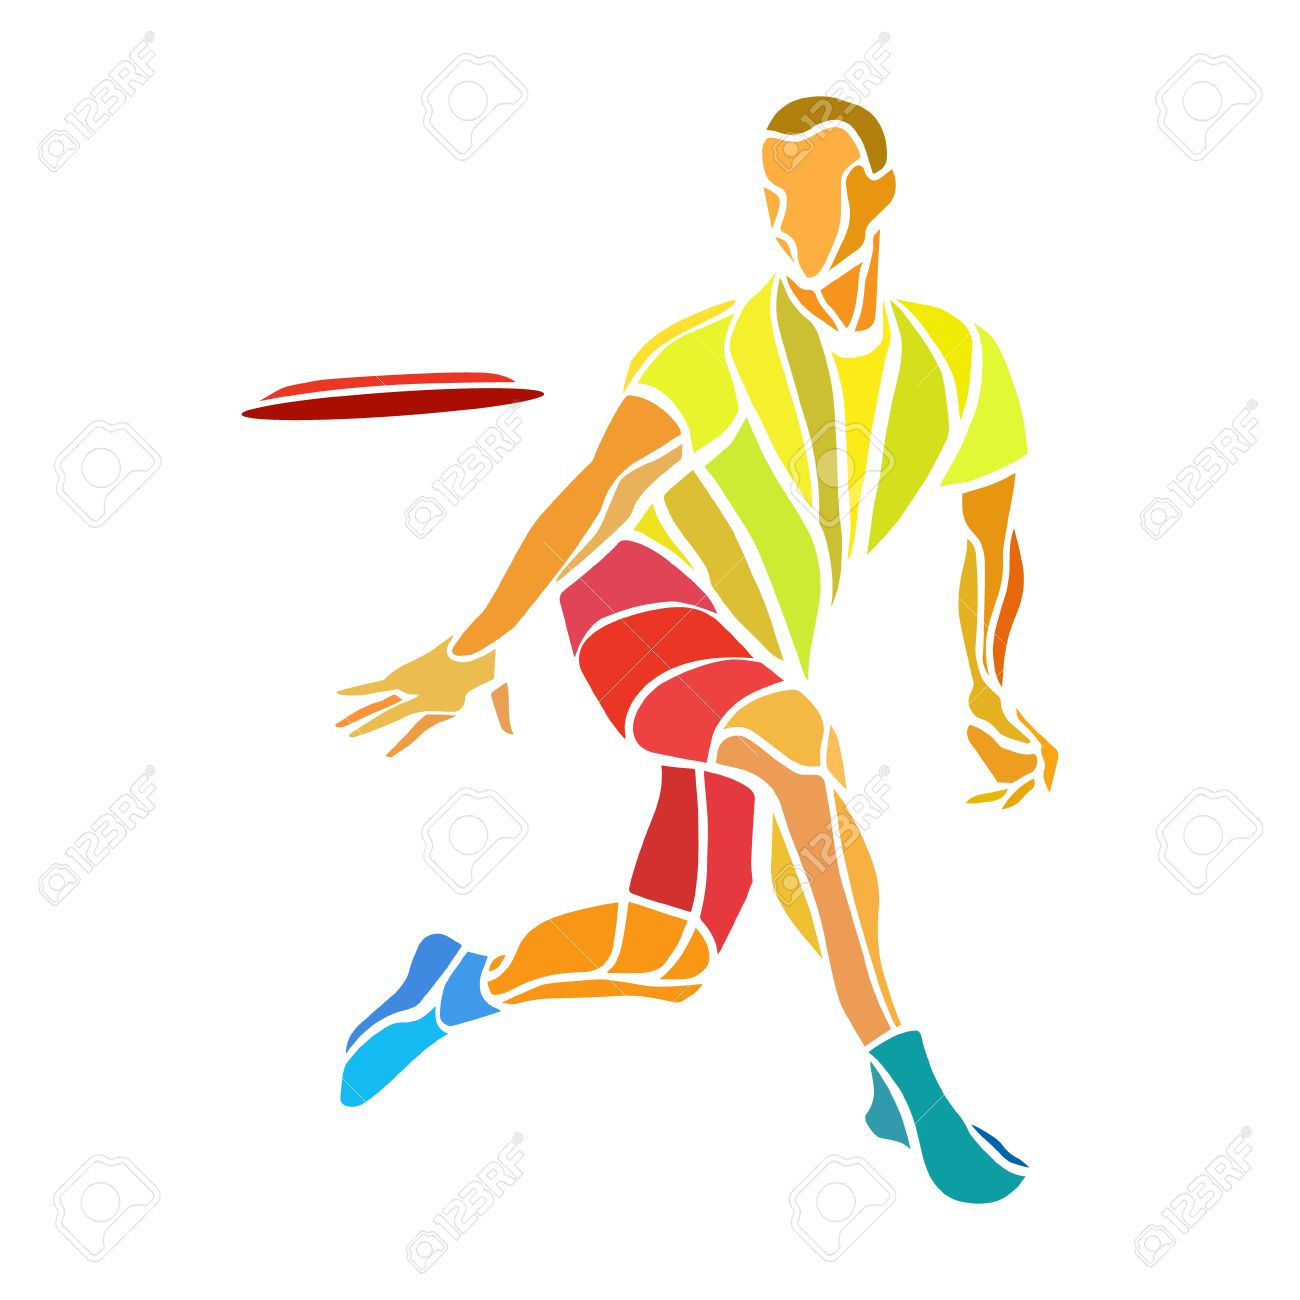 Sportsman throwing ultimate frisbee. Lineart clipart, color vector illustration - 49482565